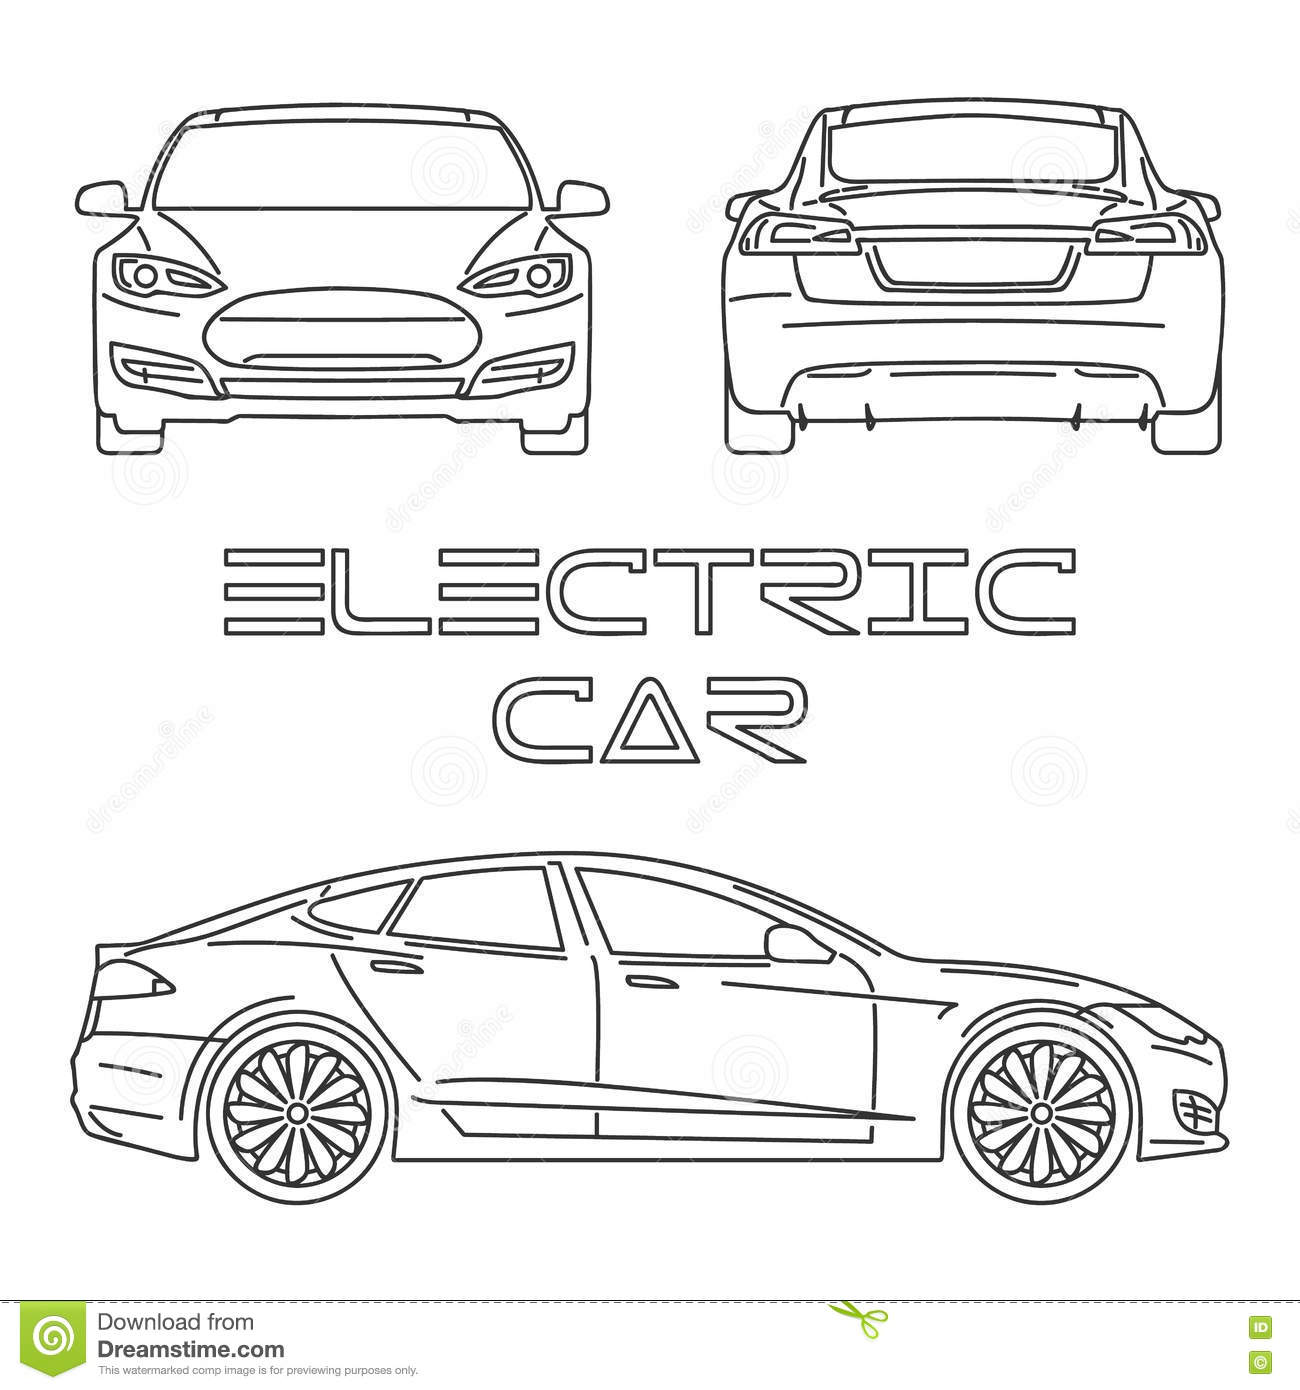 tesla cartoons  illustrations  u0026 vector stock images